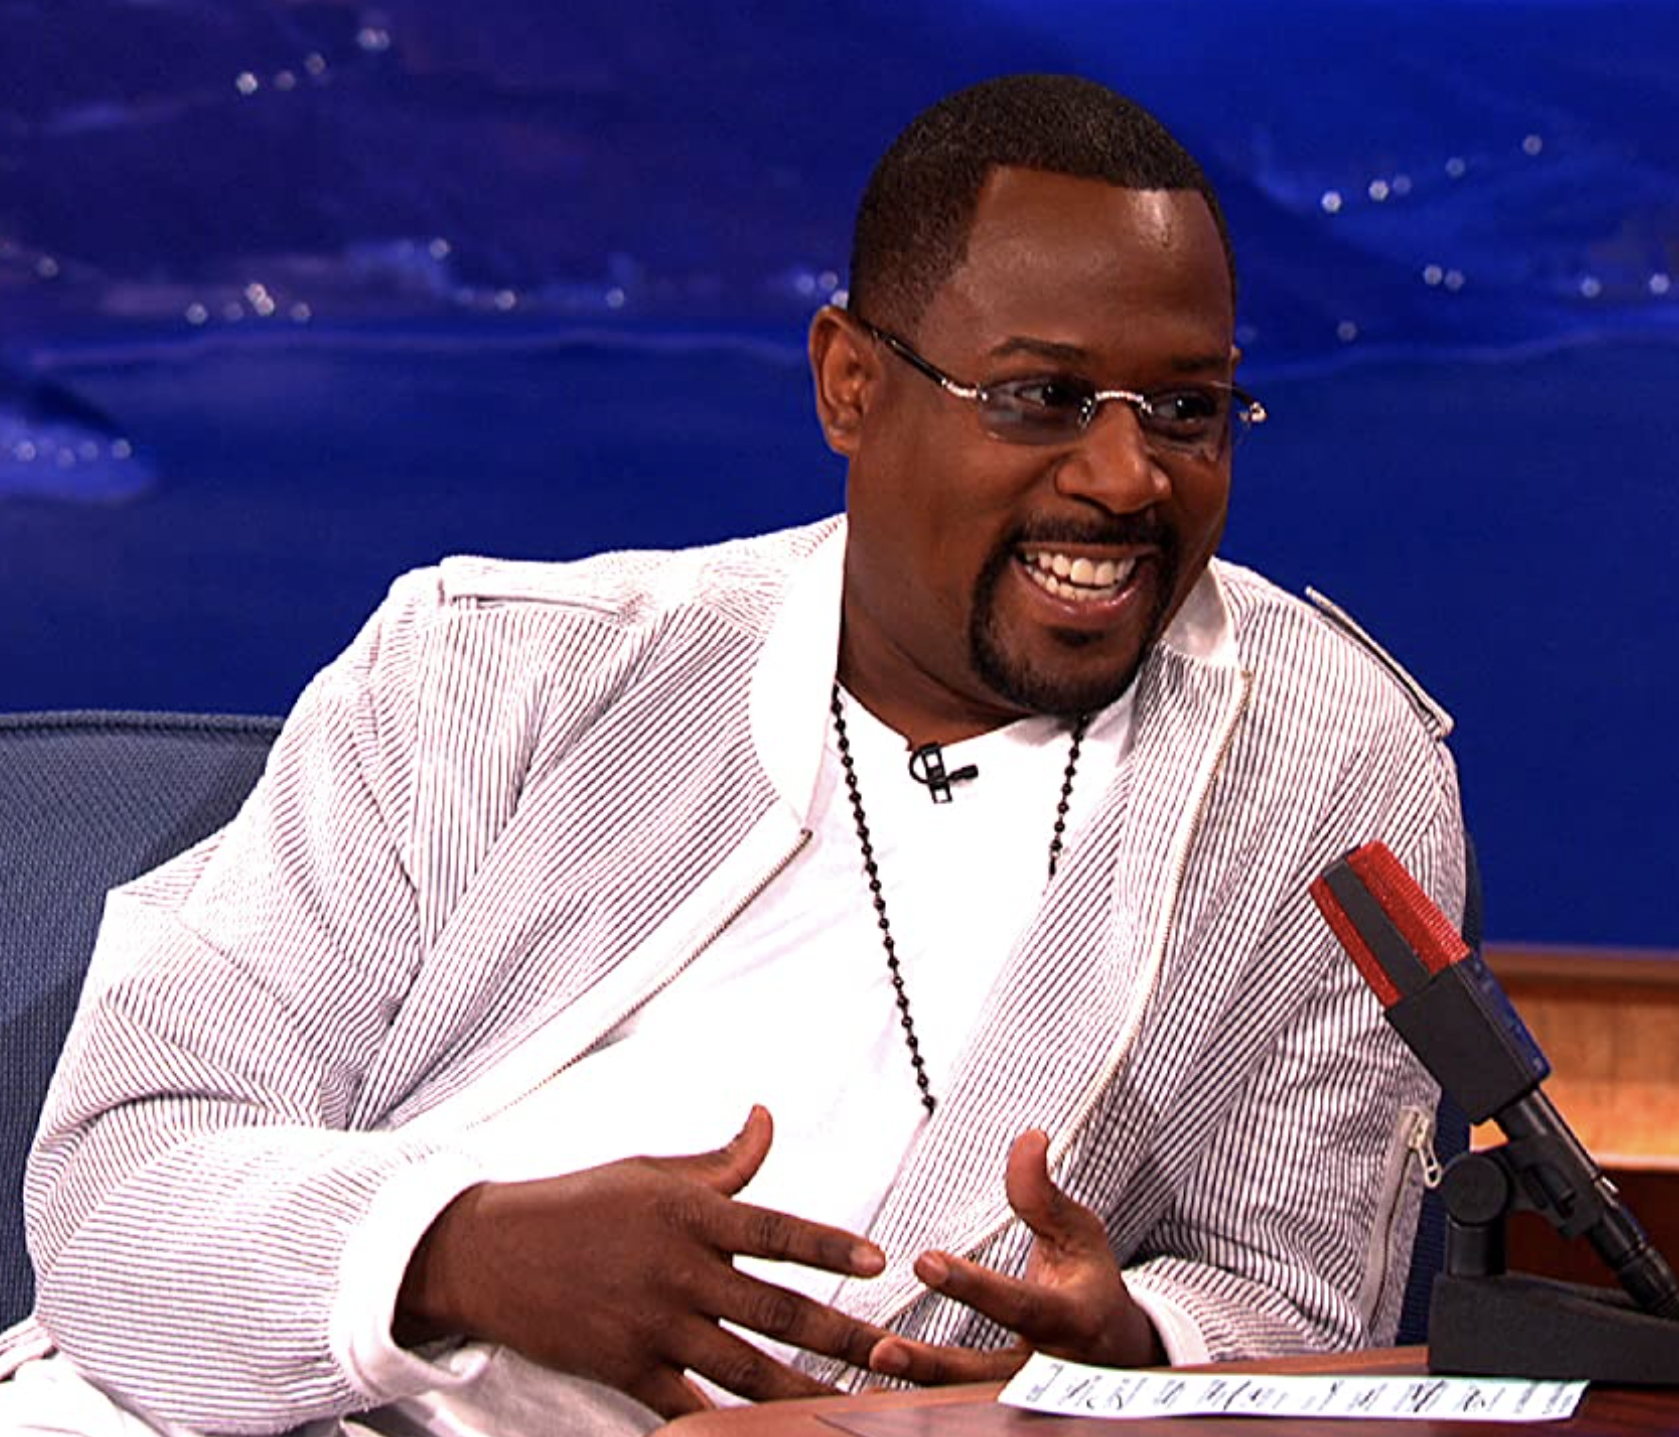 Screenshot 2021 05 11 at 08.56.21 e1620719921938 20 Things You Never Knew About Martin Lawrence